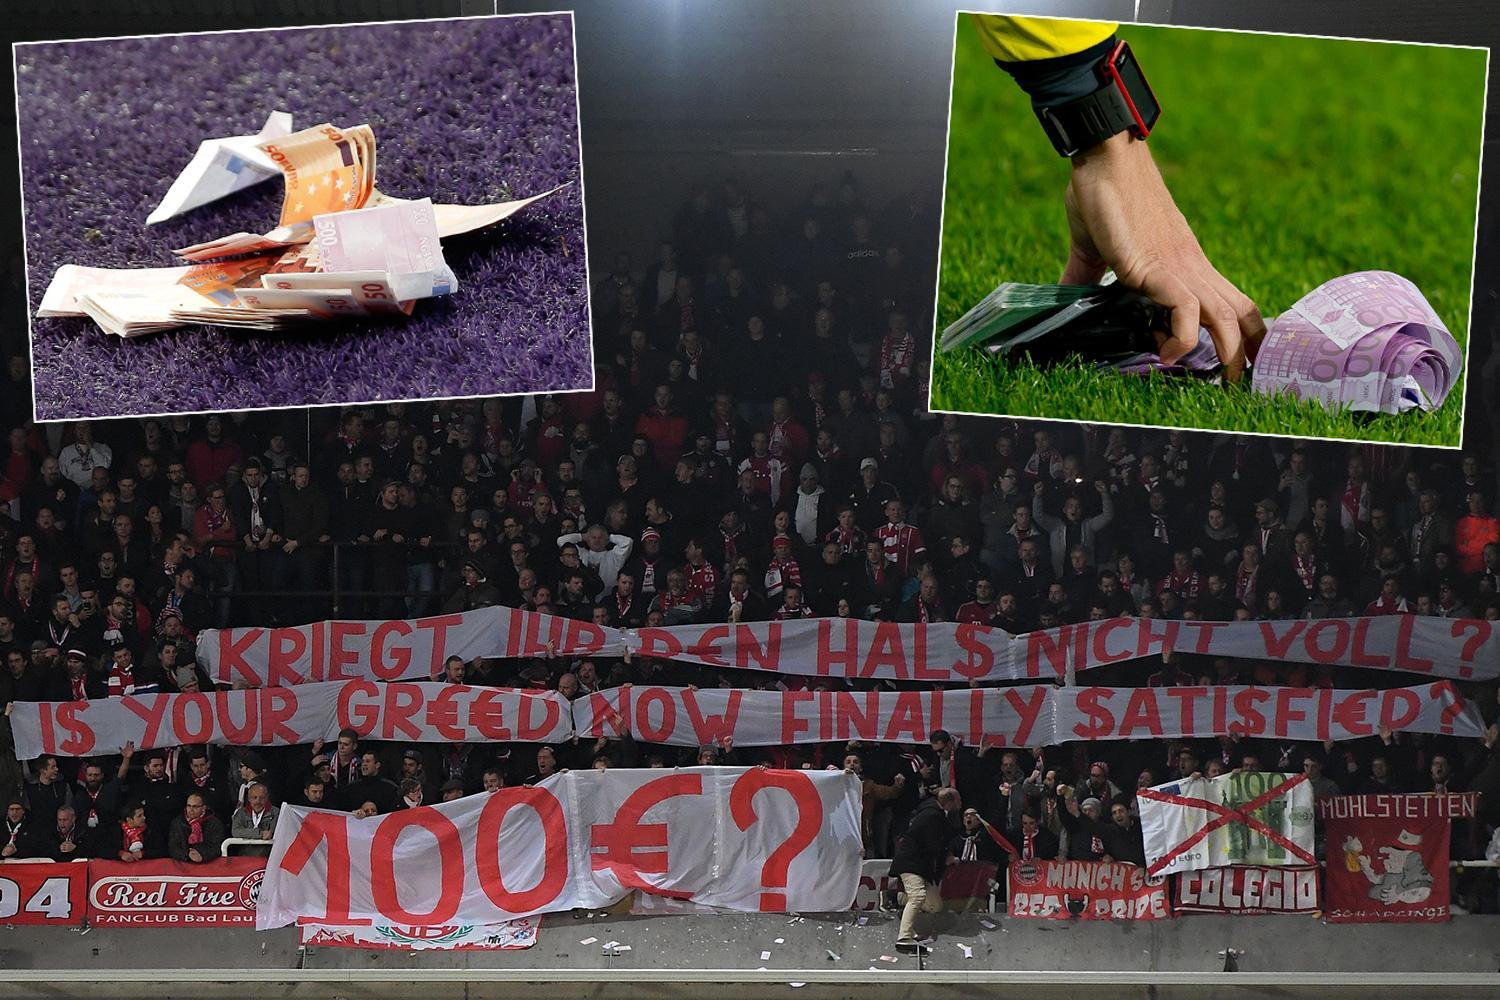 Anderlecht forced to refund Bayern Munich fans after charging them £89 per ticket… with their bill totalling £24,000